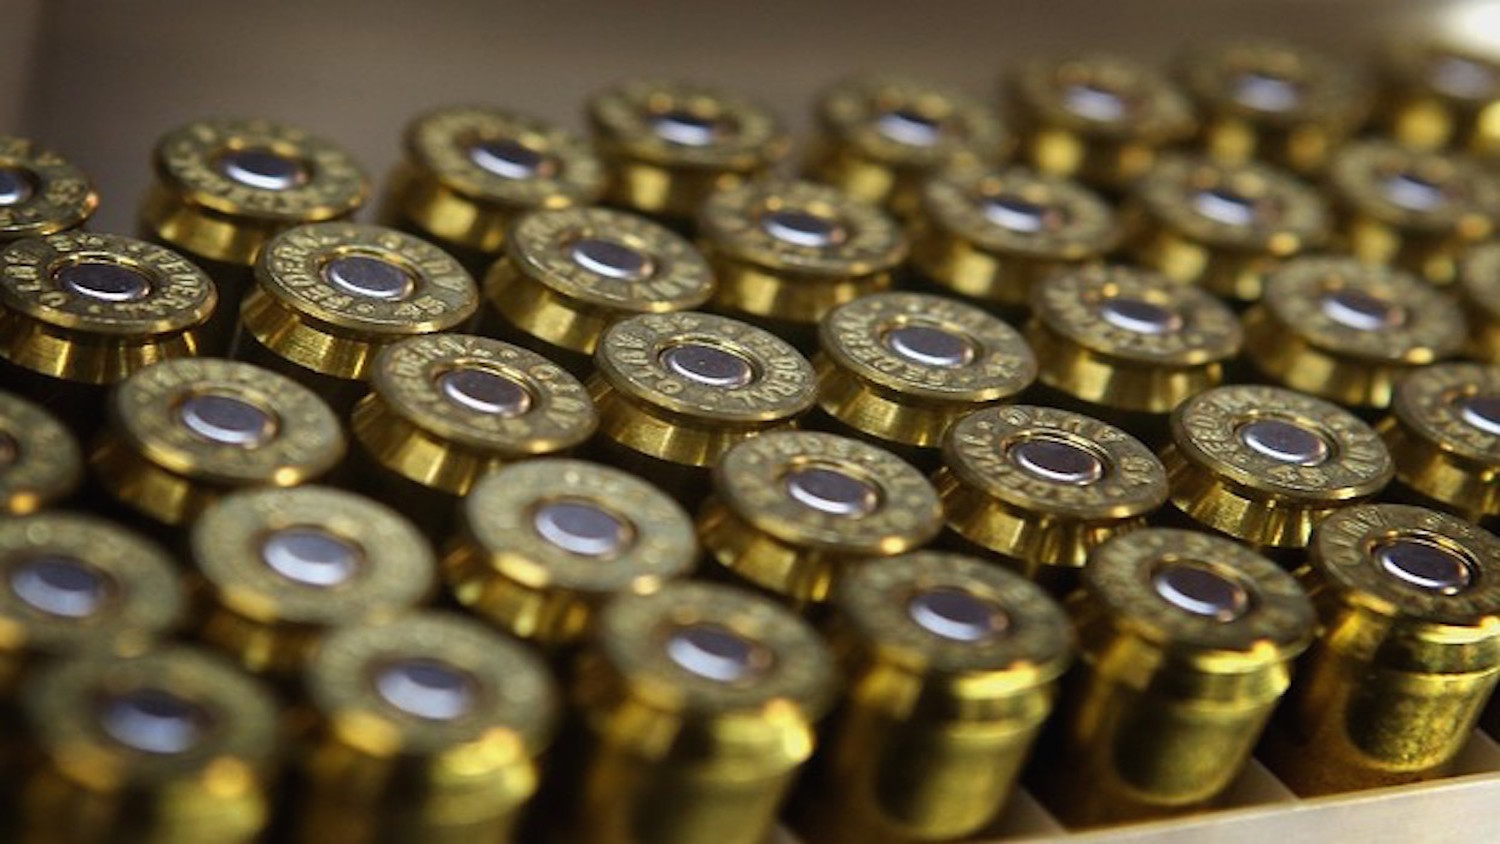 Reloading: A Brief Introduction